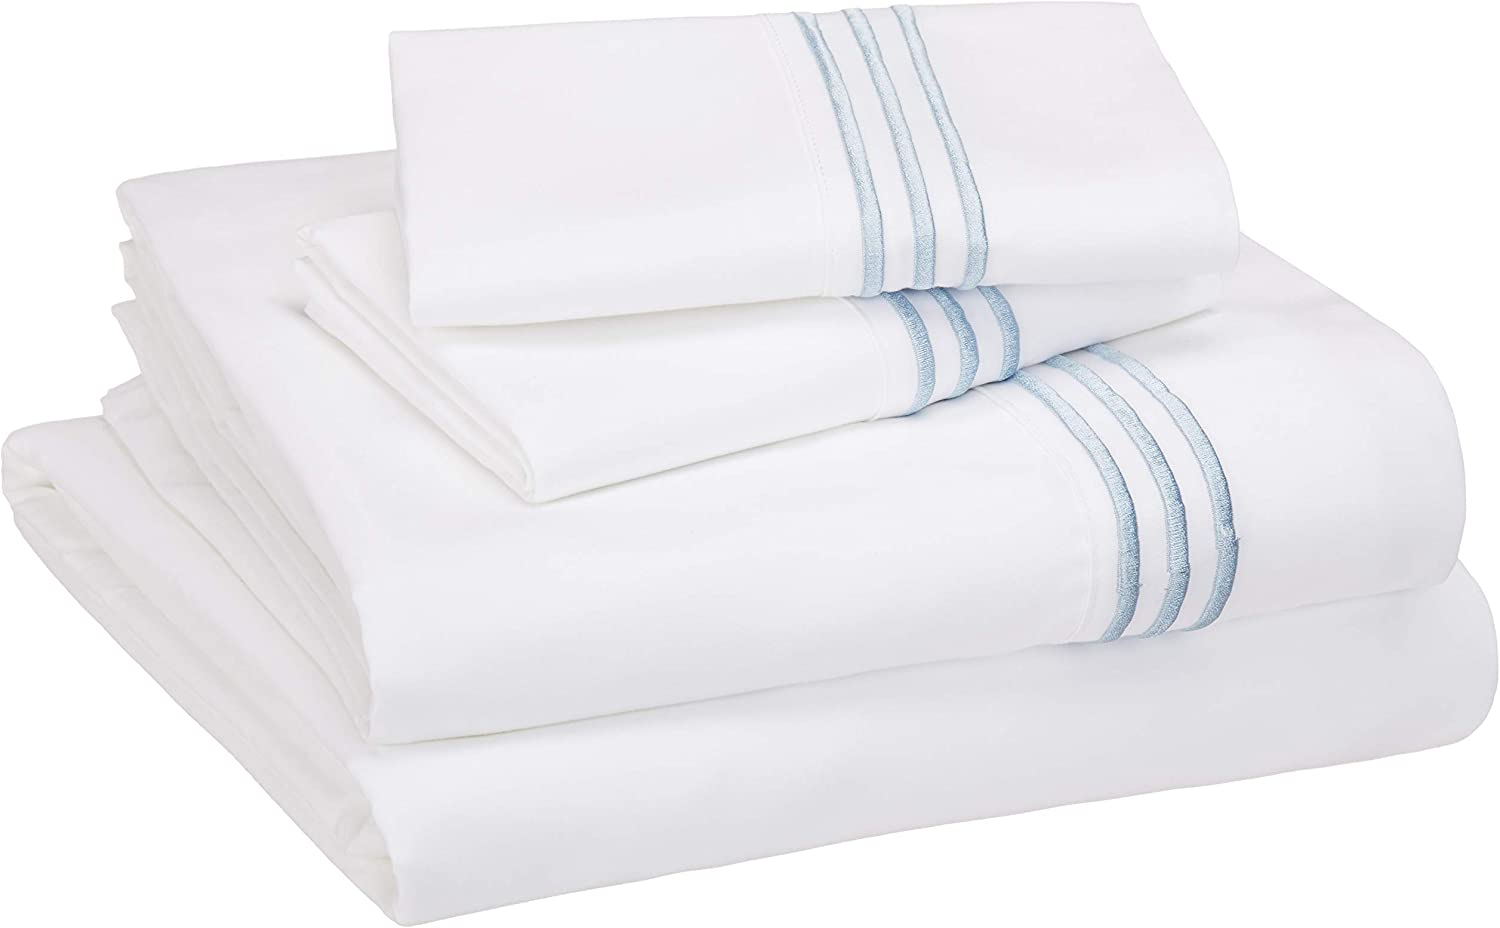 AmazonBasics Premium, Easy-Wash Embroidered Hotel Stitch 120 GSM Sheet Set - Queen, Embroidered Dusty Blue